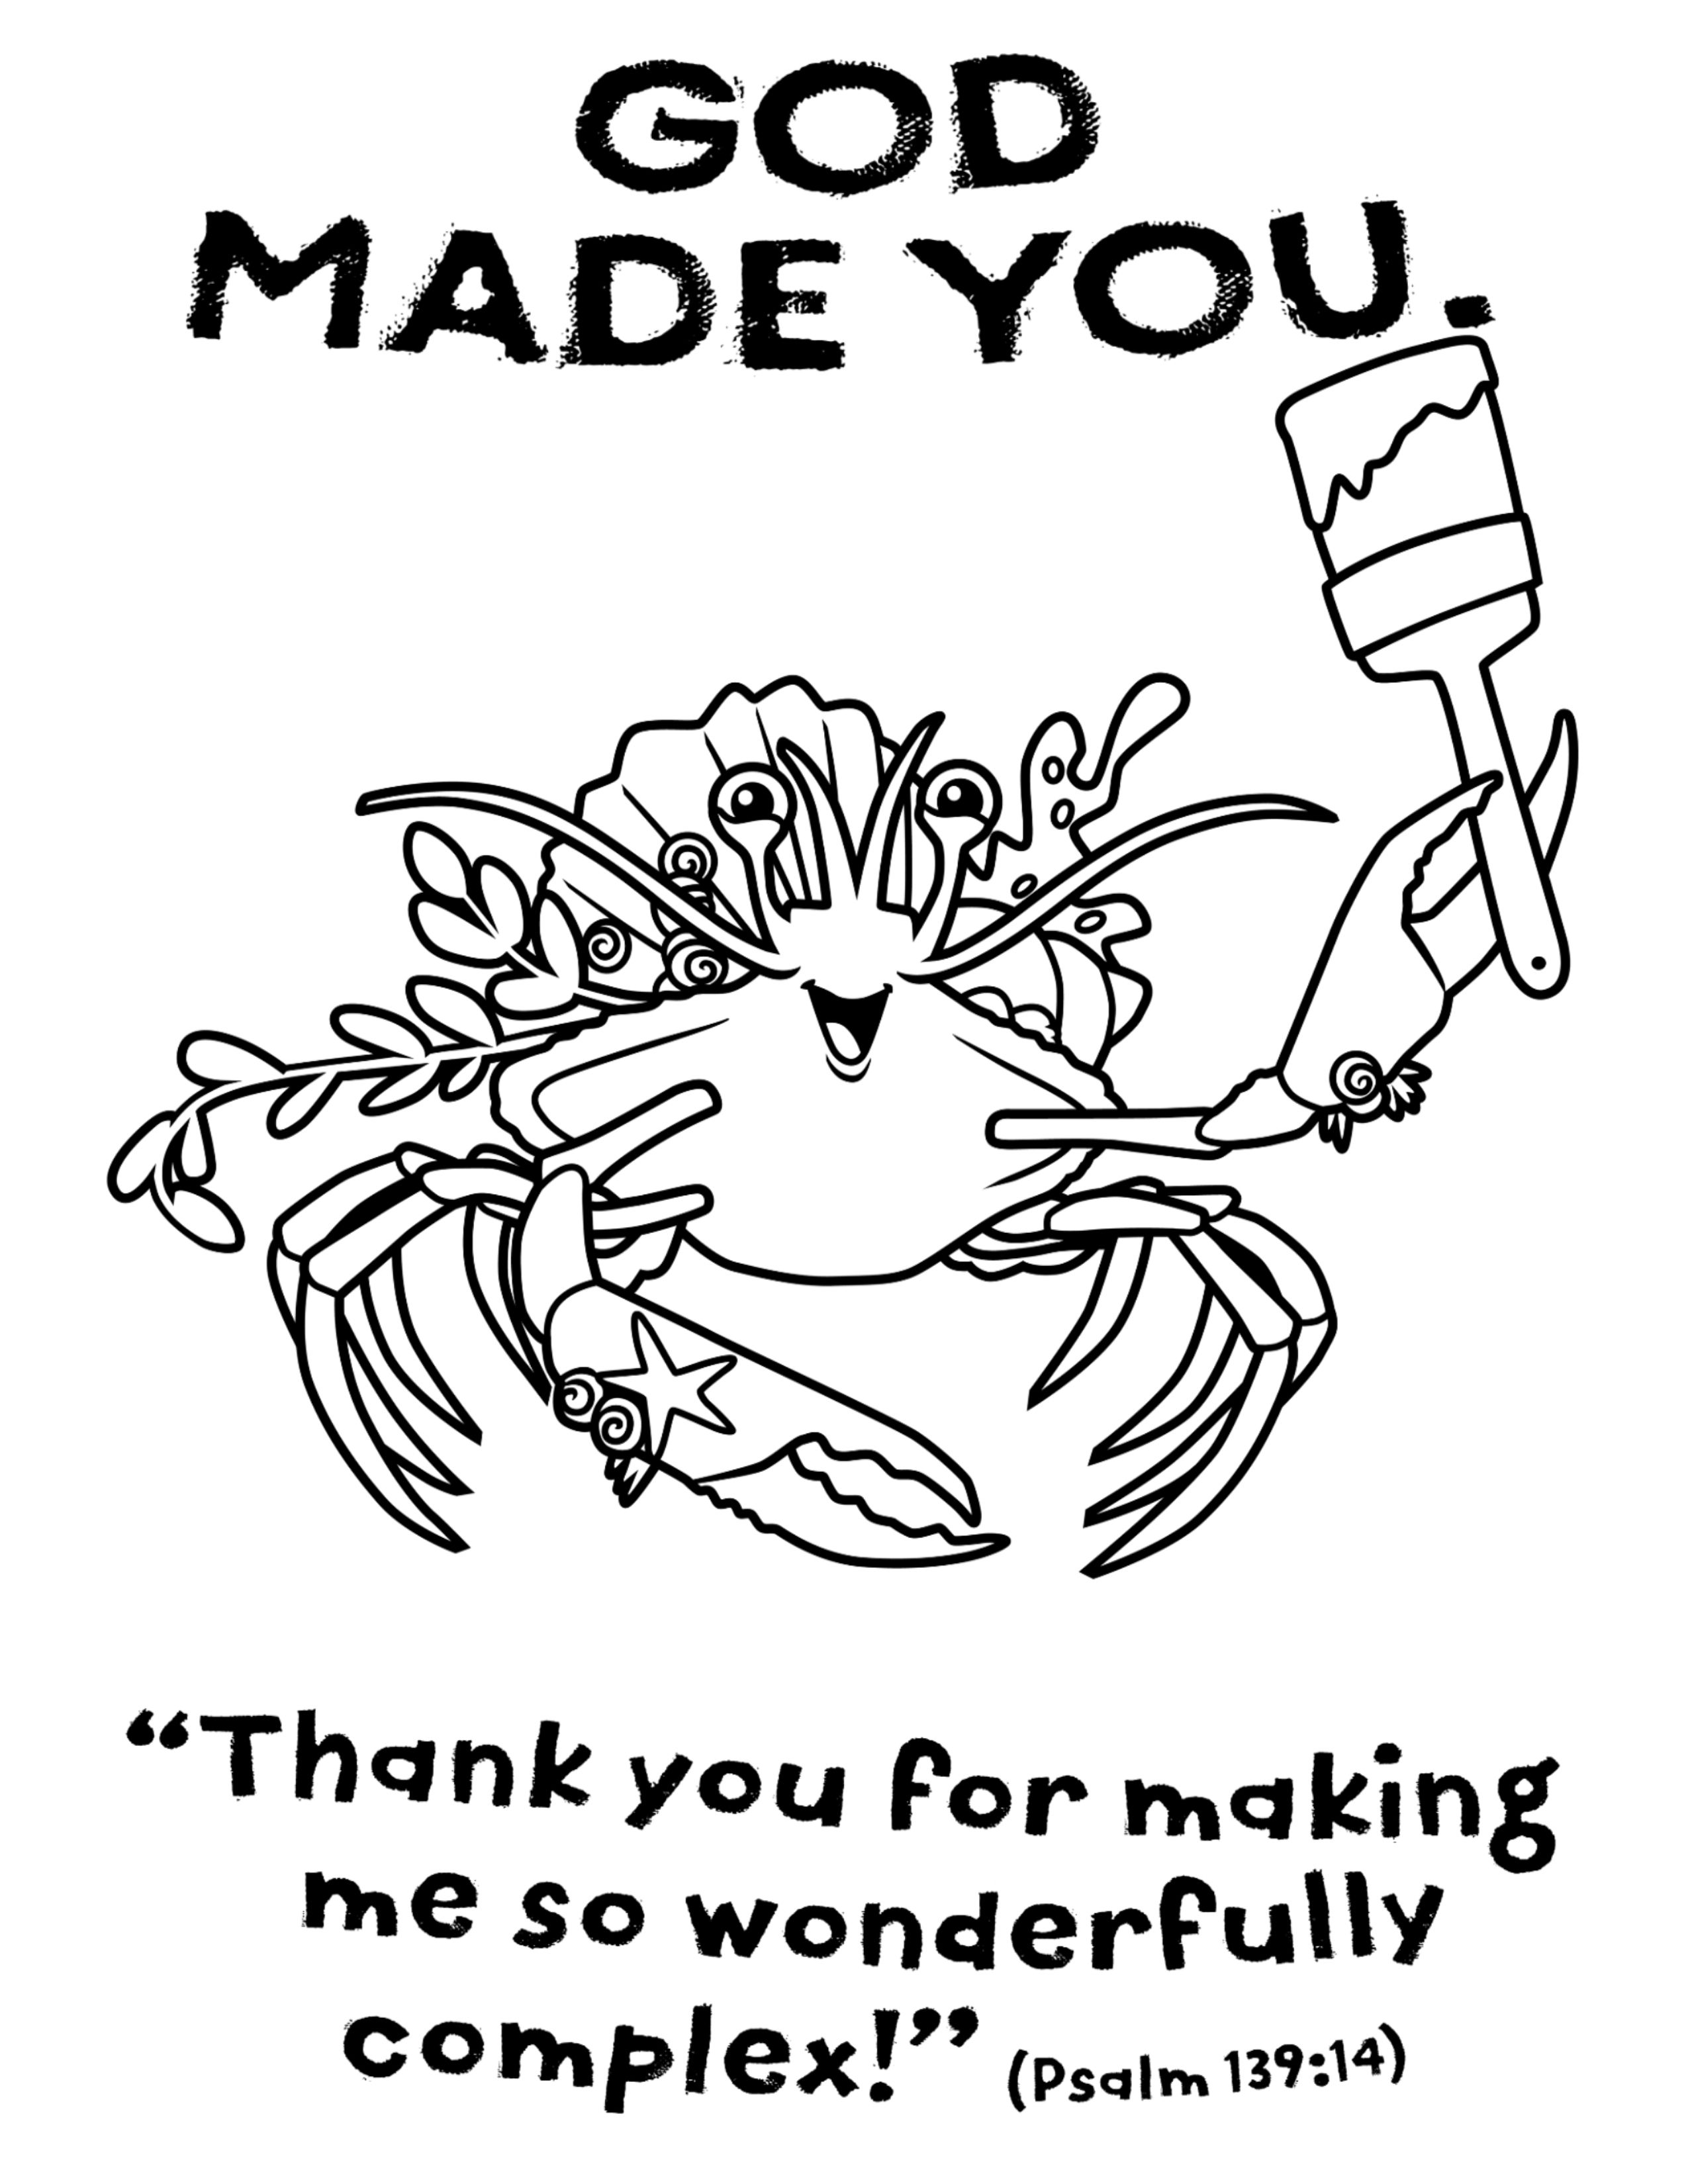 Coloring Page: Decker Coloring Page Maker Fun Factory Vbs 2017 Maker.